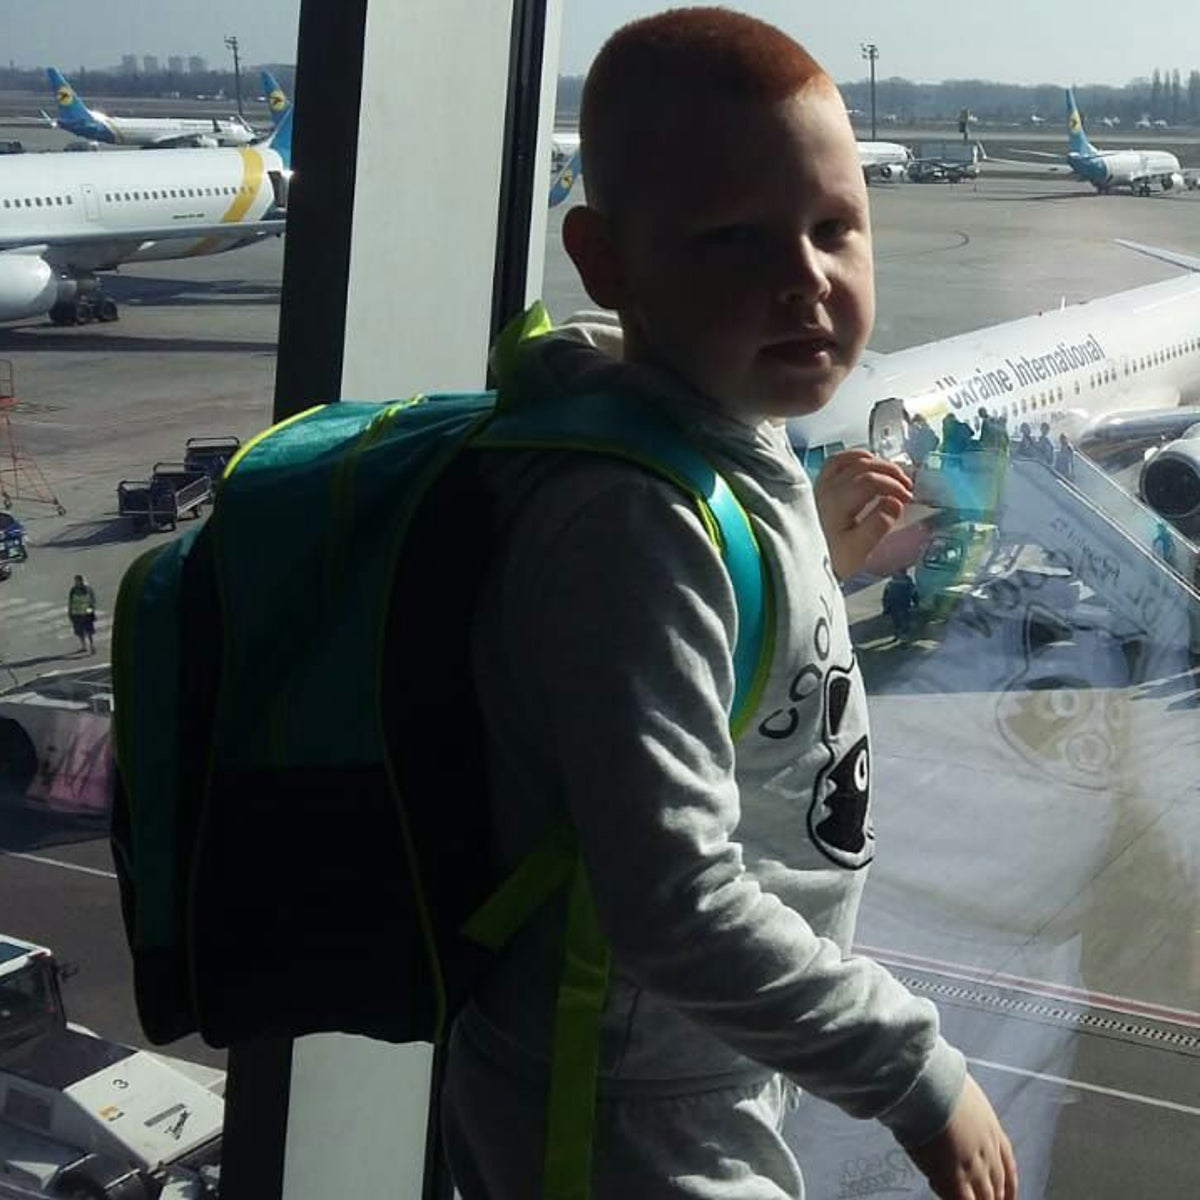 Nikita Weisgeim, 6. After a 14-hour nightmare in Israel, he and his family were put on a plane back to Kiev.